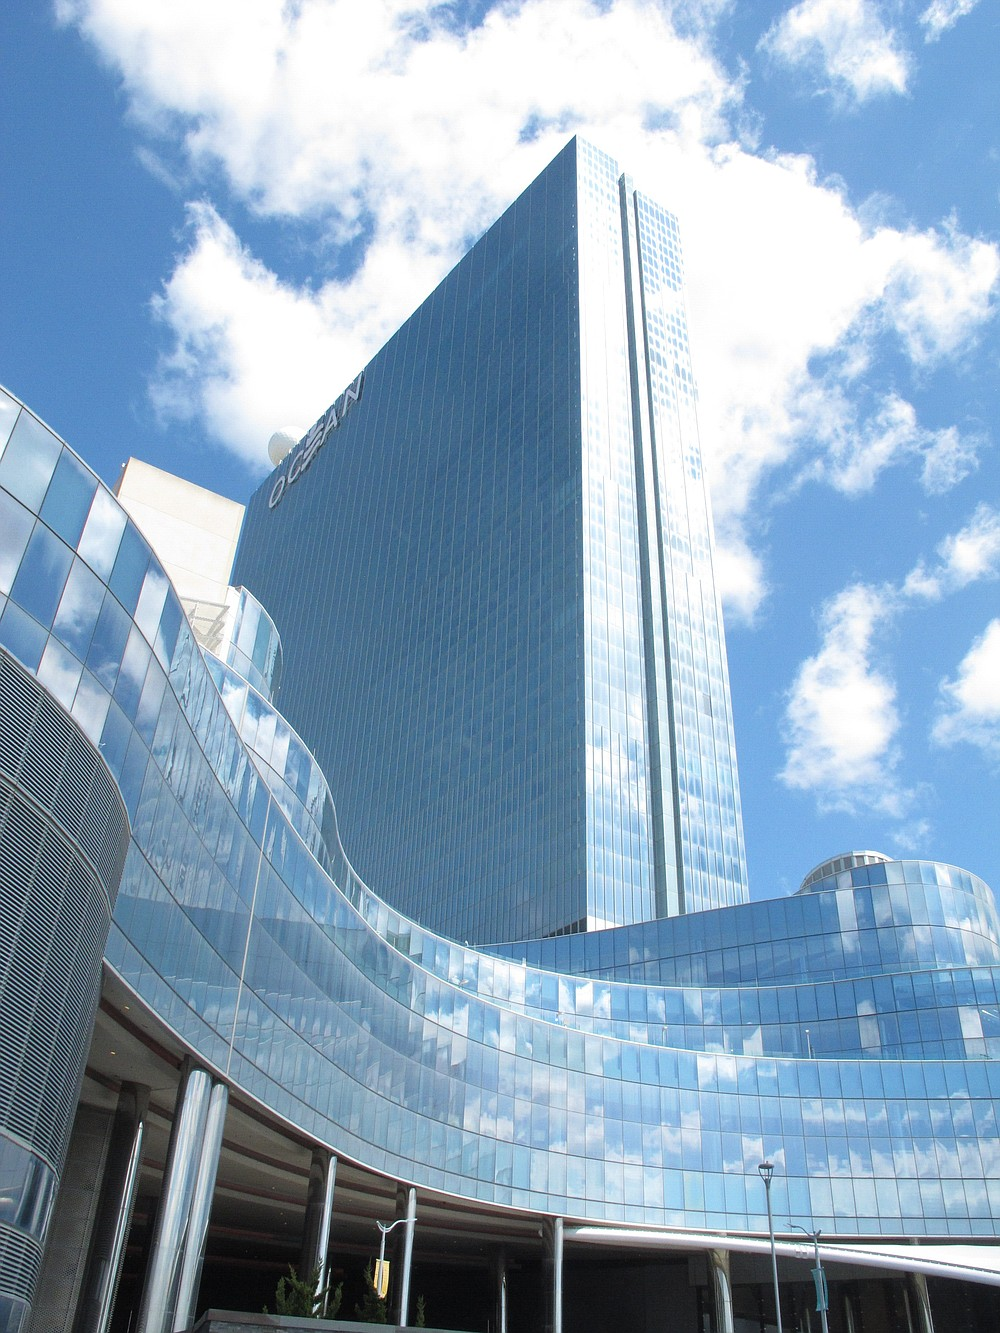 This April 30, 2021 photo shows the exterior of the Ocean Casino Resort in Atlantic City N.J. Ocean is among numerous Atlantic City casinos reinvesting millions into their operations amid the coronavirus pandemic. (AP Photo/Wayne Parry)